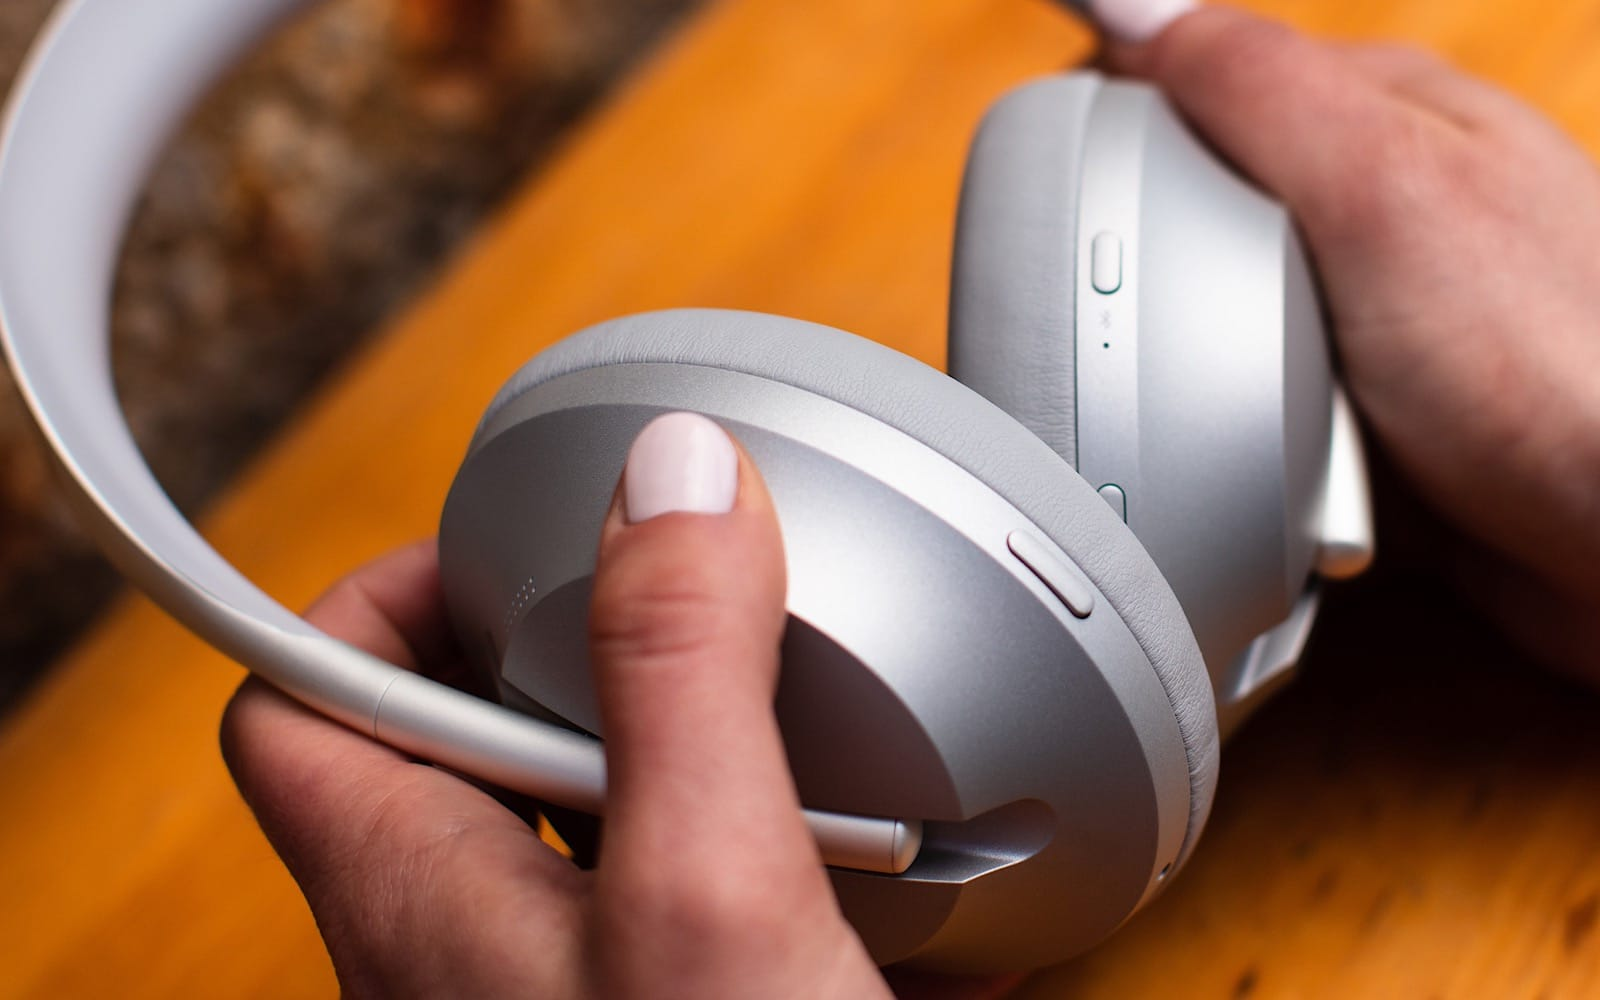 c6ff33038e1 Bose Noise Cancelling Headphones 700. In fact, while noise cancellation is  a primary part of the technology, they also come with improvements to voice  ...